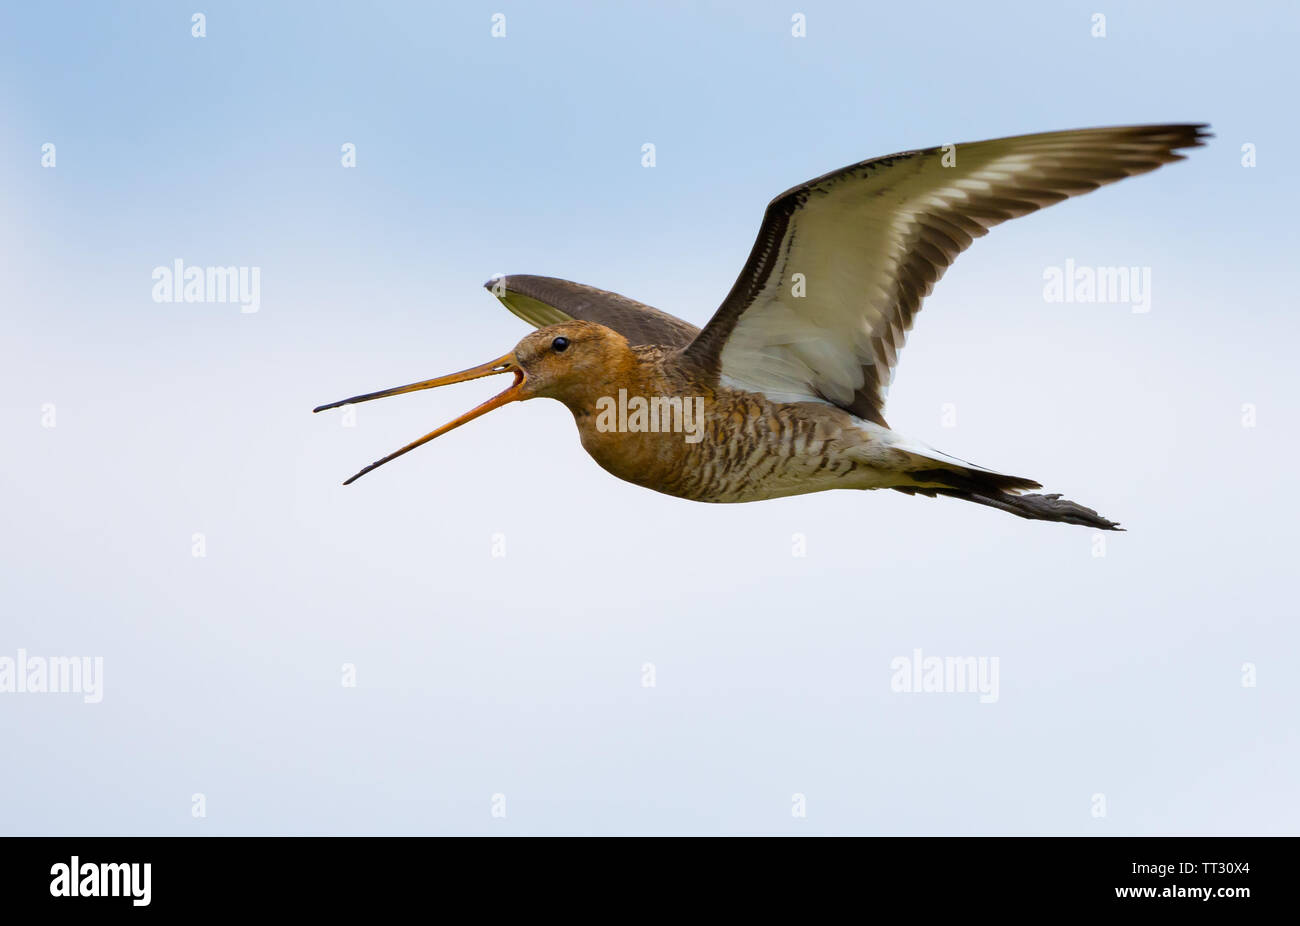 Black-tailed godwit flying and crying very loudly - Stock Image